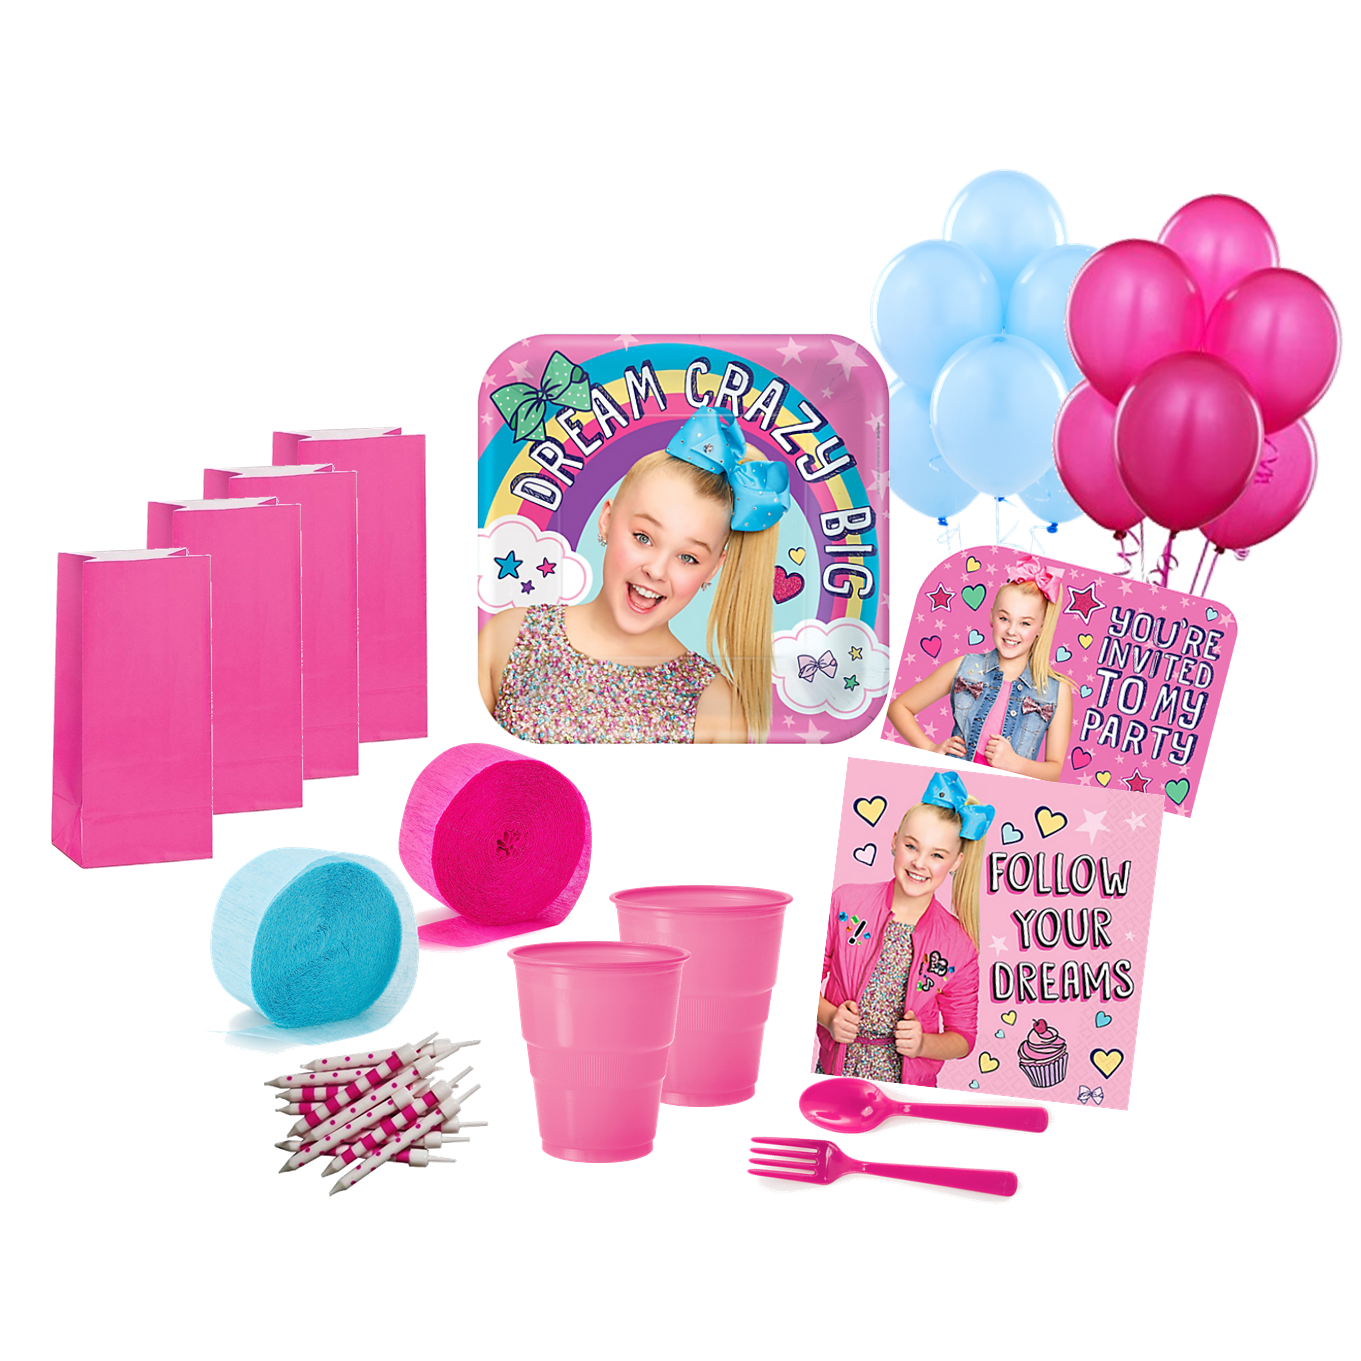 424da6d9c47 JoJo Siwa Deluxe Party Pack